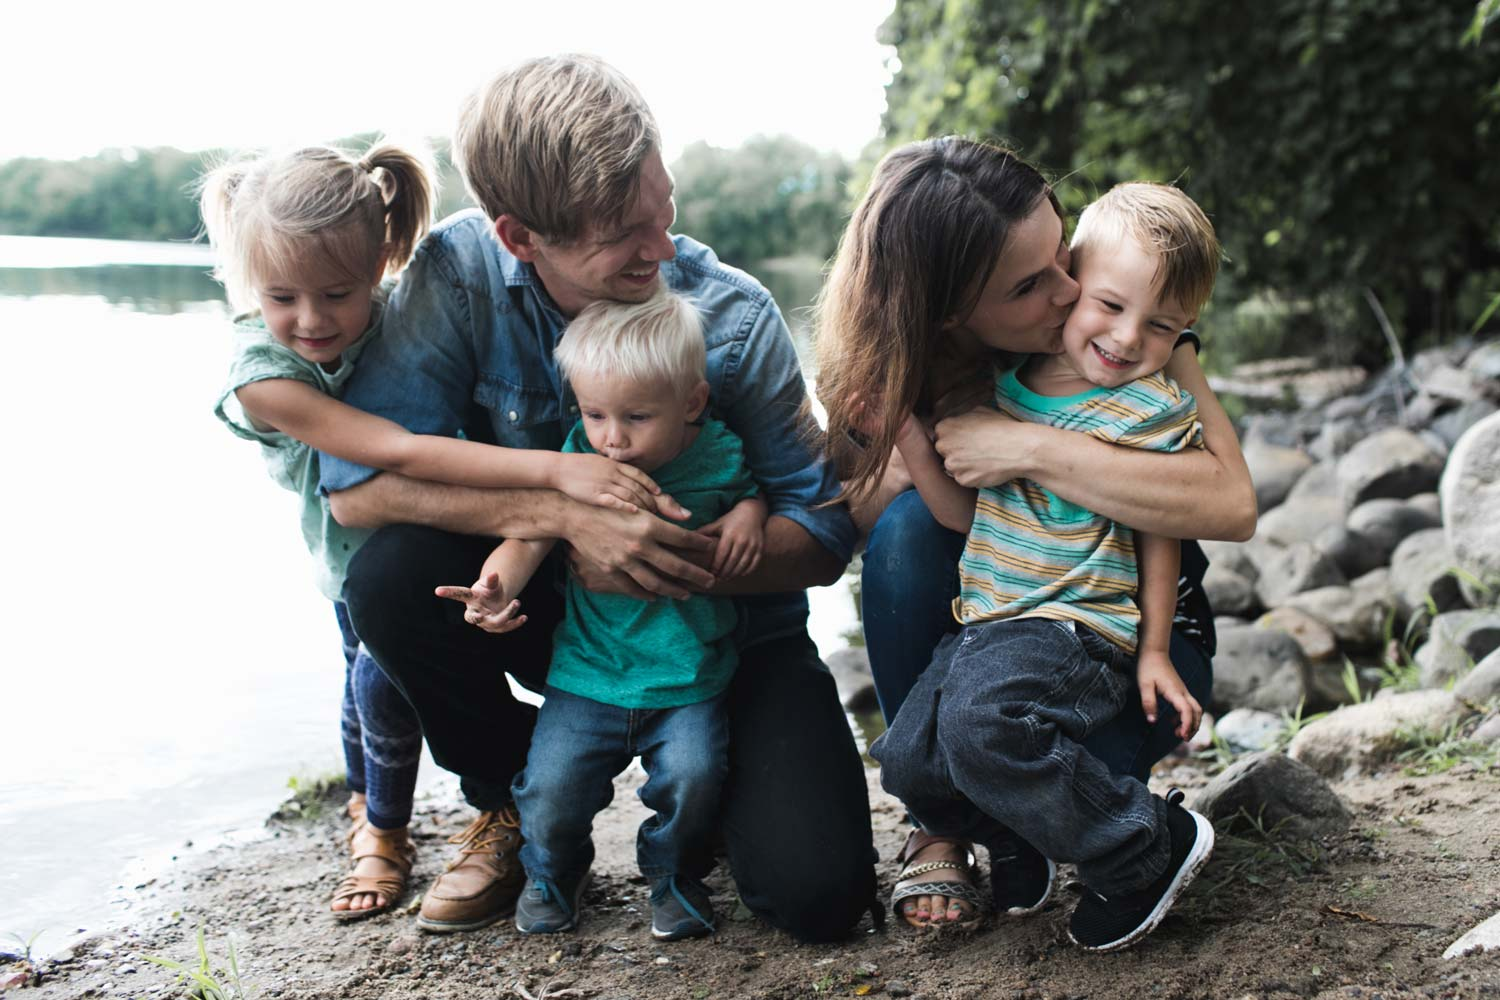 Mom and dad hugging kids on a rocky beach next to a river